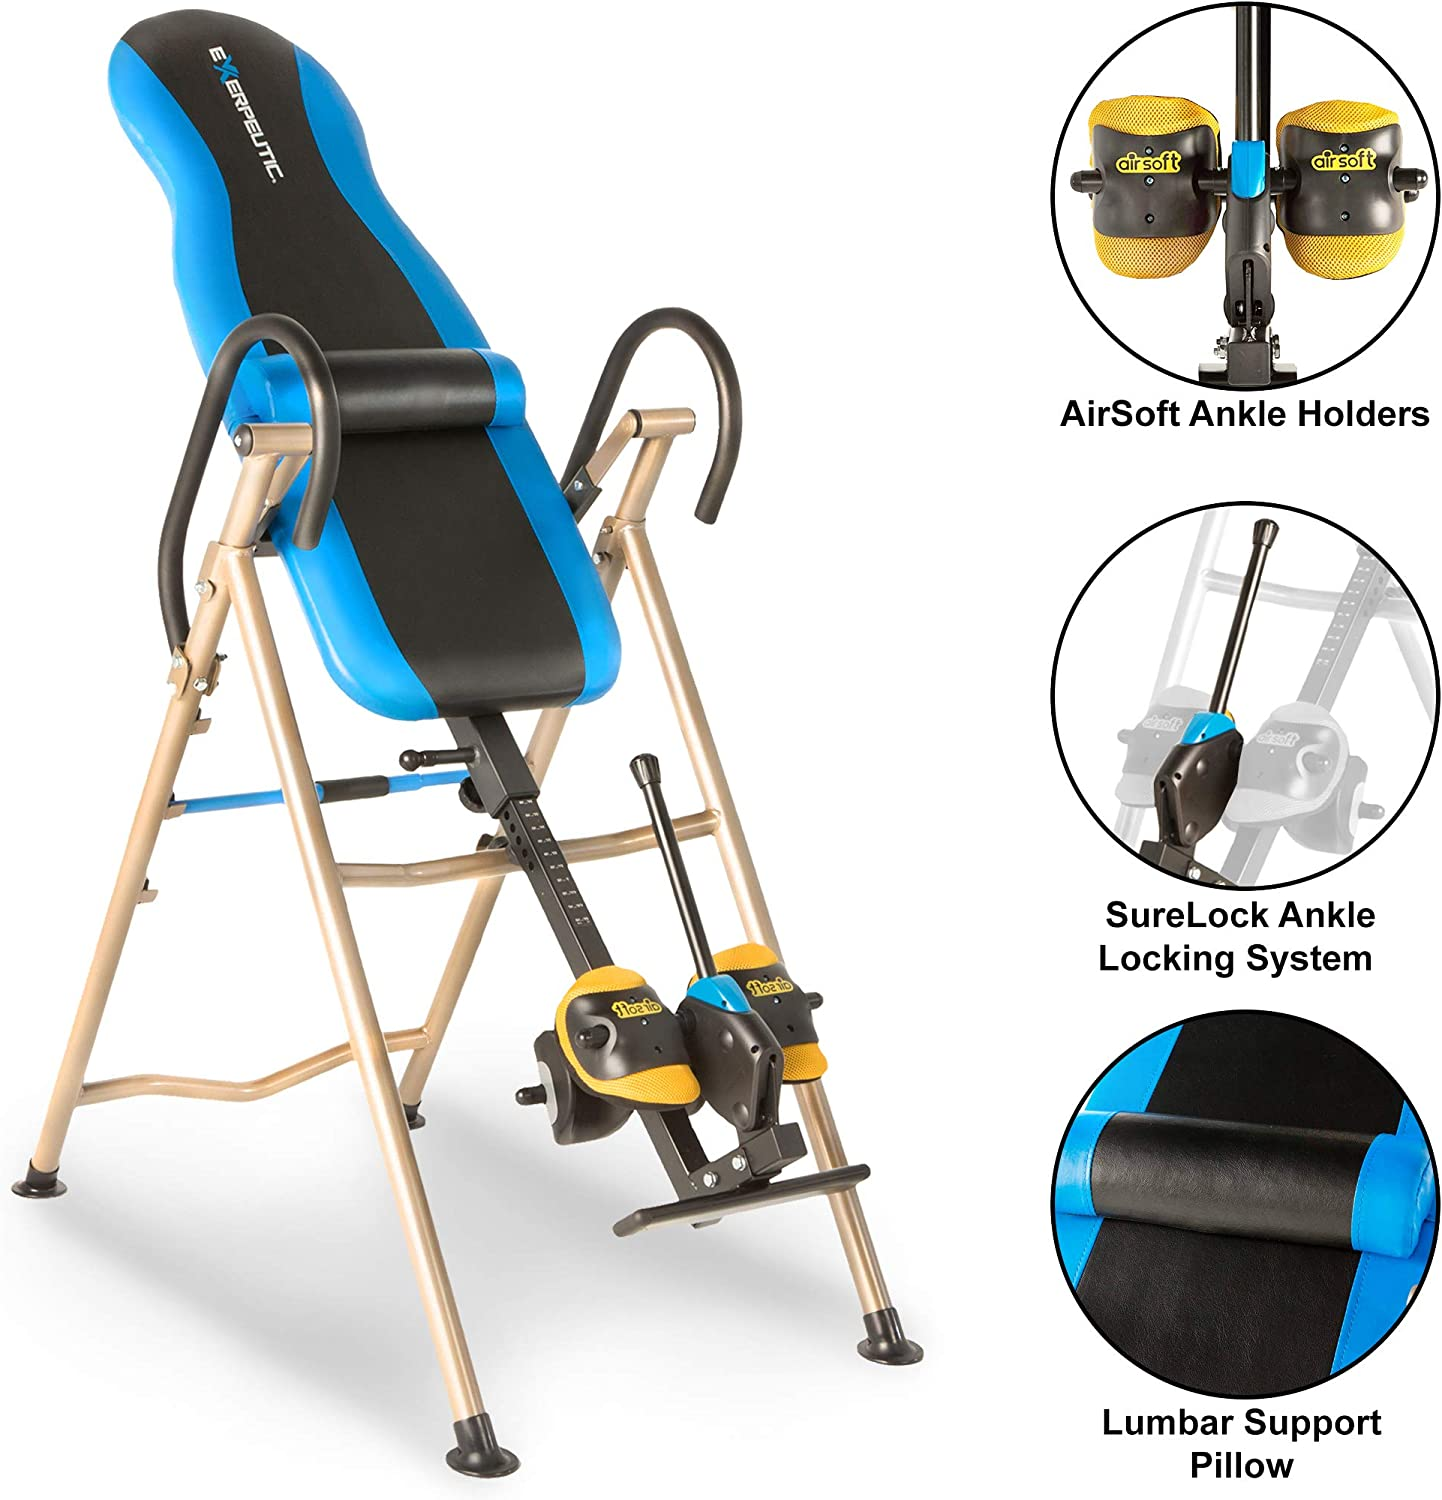 Exerpeutic Inversion Table 225SL Model